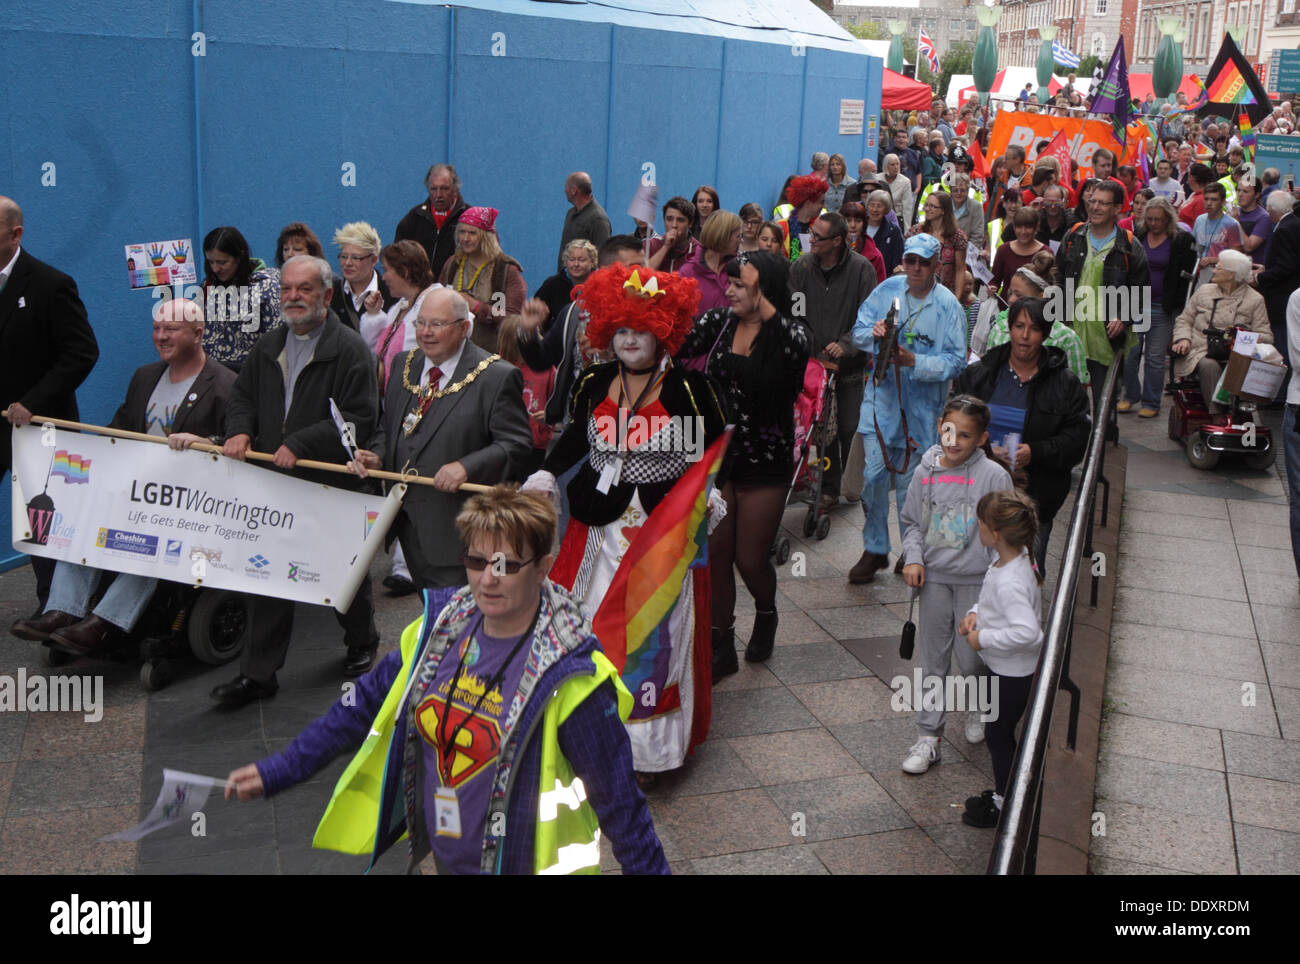 England,WA1,UK,GB,Great,britain,British,gay,lesbian,trans,transgender,LGBT,Bi,Bi-sexual,bisexual,people,men,women,marching,rights,WarringtonPride,march,marches,WBC,borough,council,unitary,local,authority,GGHT,golden,gates,housing,trust,events,celebrating,event,annual,yearly,flag,7th,Sankey,shopping,gotonysmith,Warington,gayrights,Sep,Sept,Stonewall,town,demonstrate,demonstrators,demonstrator,Liberation,Front,GLF,gayness,gayboy,boy,boys,girls,girl,population,world,worldpride,Canal,St,street,rugby,player,players,team,cup,rugbyworldcup,07/09/2013,09/07/2013,Rylands,Palmyra,Sq,square,Bond,Bridge,WarringtonLGBT,LGBTWarrington,members,volunteers,stigma,services,service,HIV,aids,sexuality,sex,lgbtwarrington.co.uk,WA1,1JL,WA11JL,st,street,Buy Pictures of,Buy Images Of